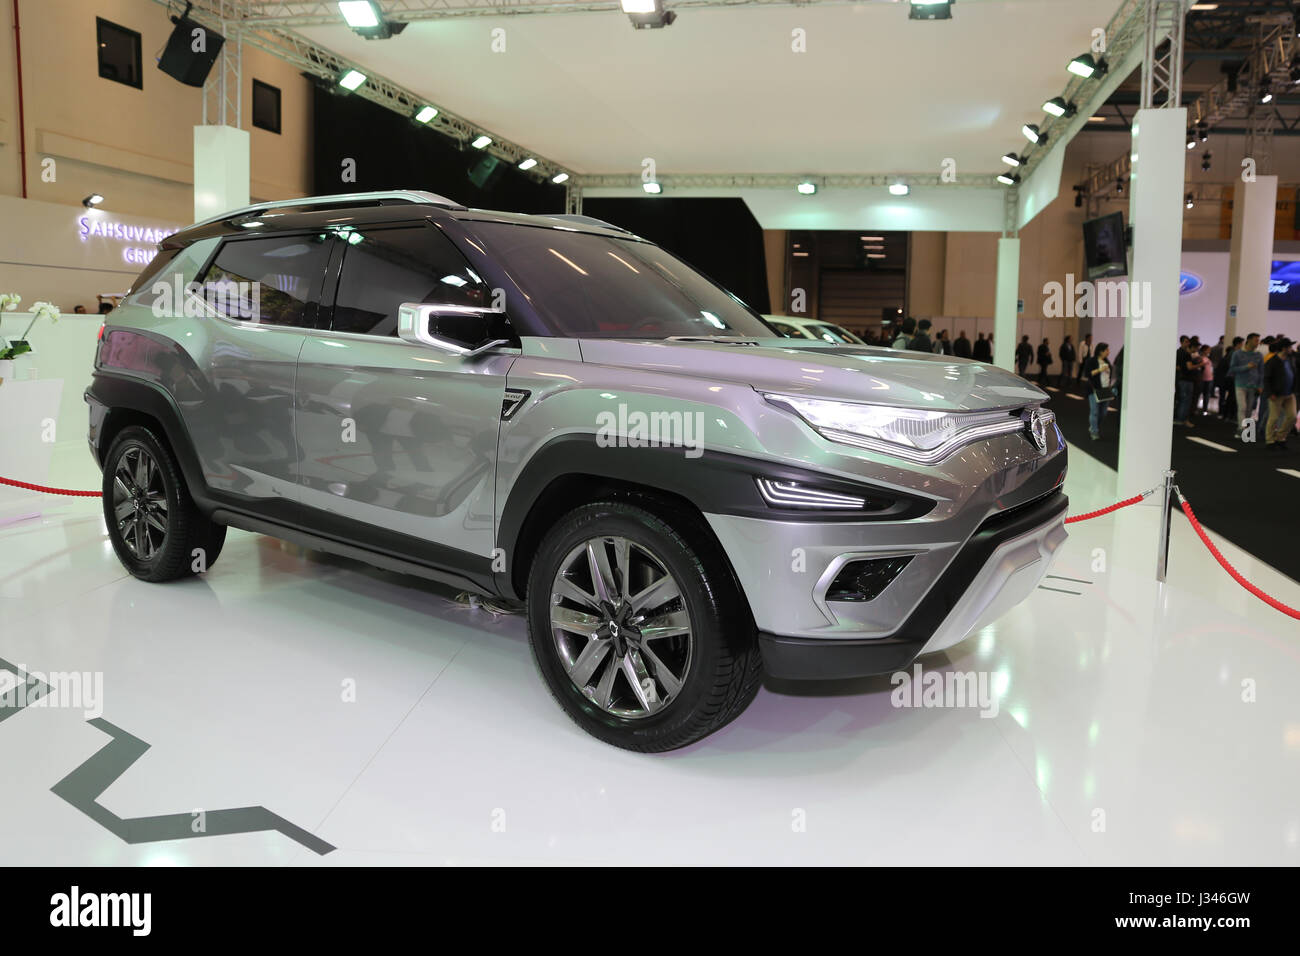 Istanbul turkey april 22 2017 ssangyong xavl concept on display at autoshow